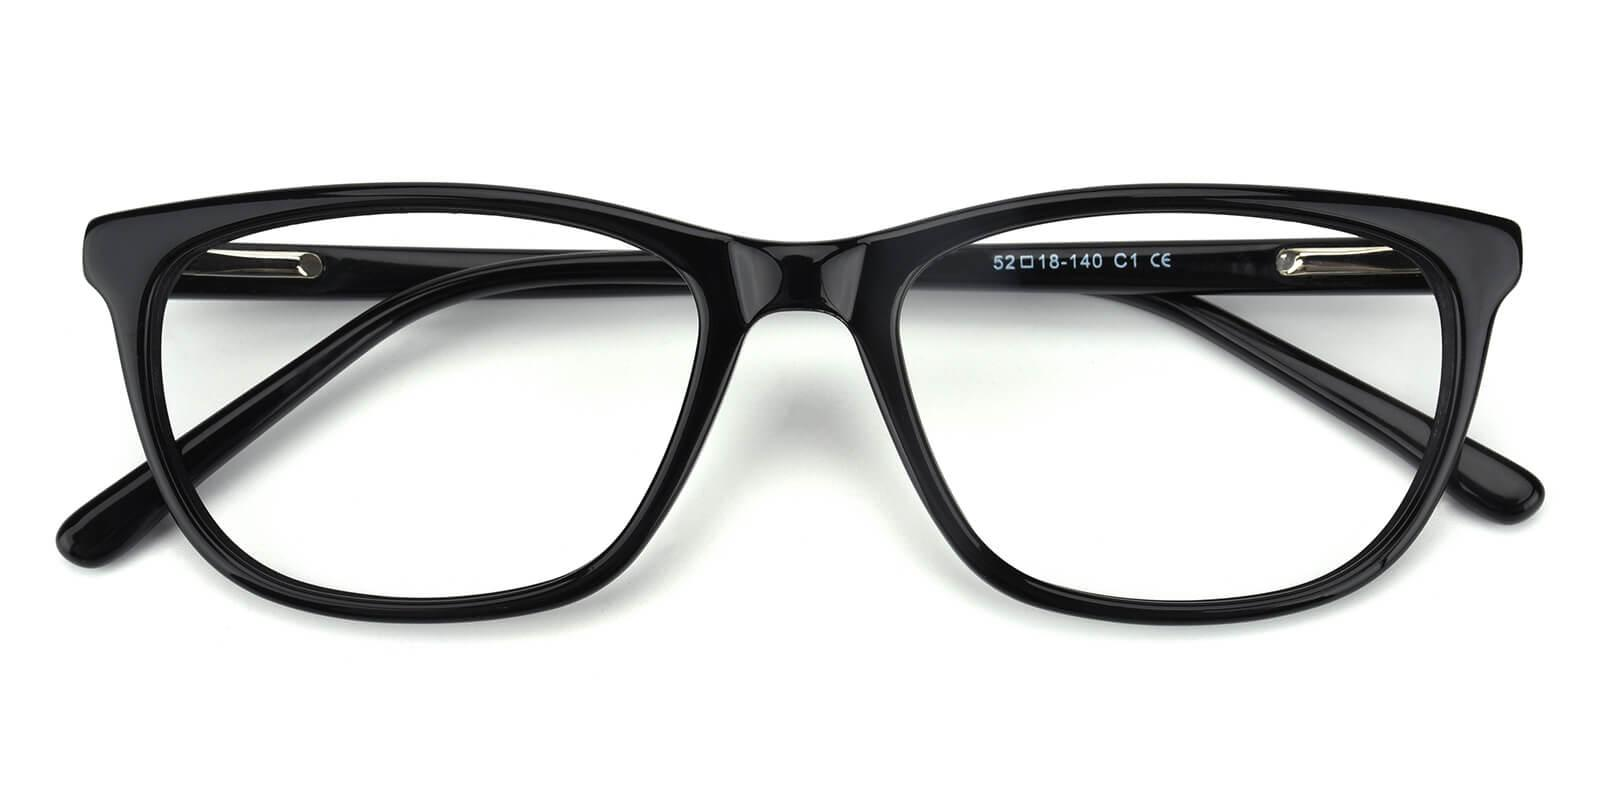 Emblem-Black-Square / Cat-Acetate-Eyeglasses-detail